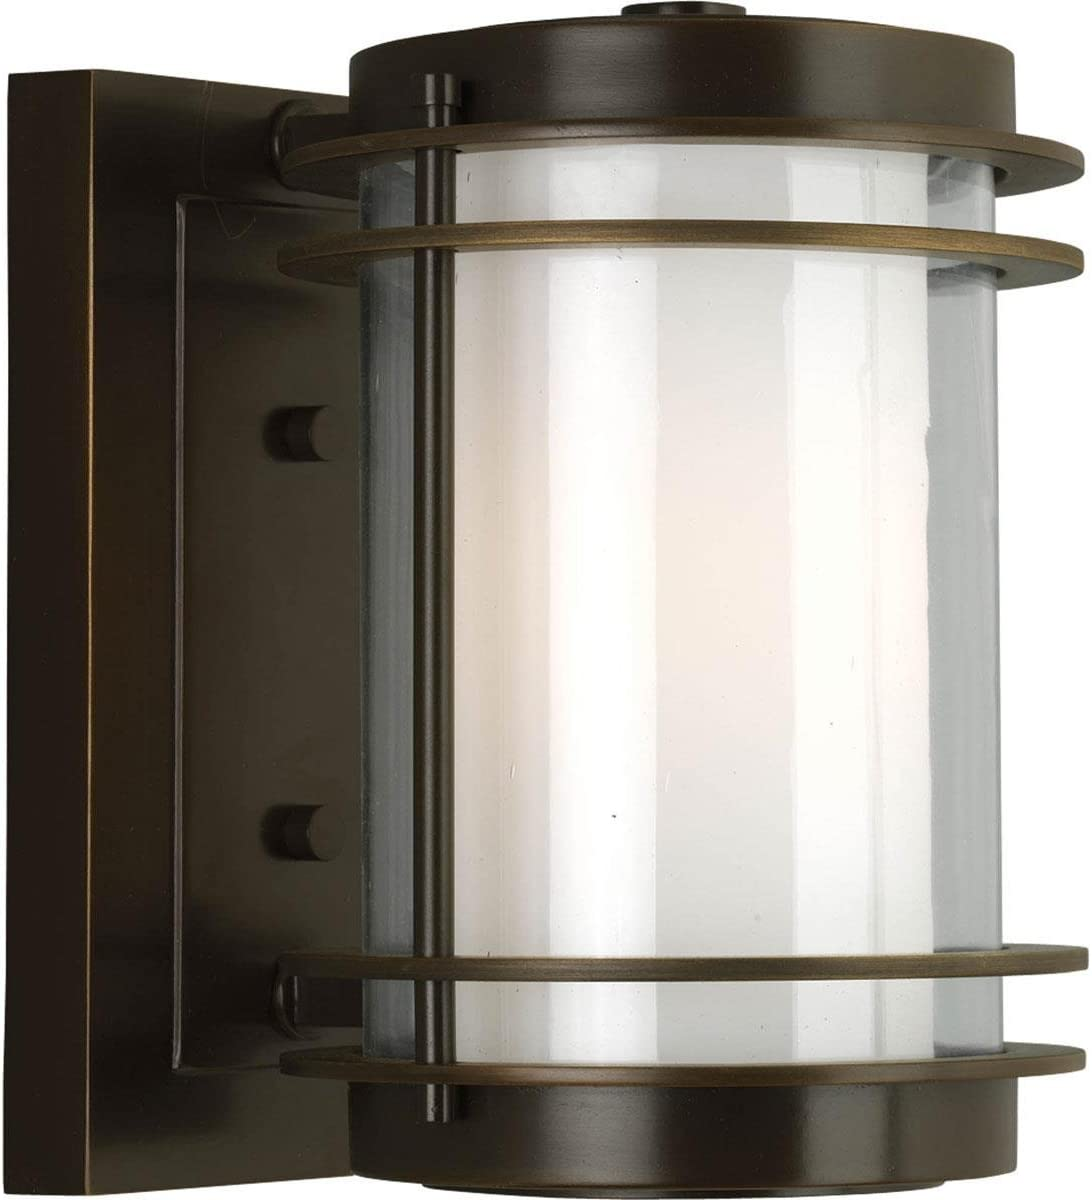 Penfield Outdoor Wall Sconce in Oil Rubbed Bronze Size Small